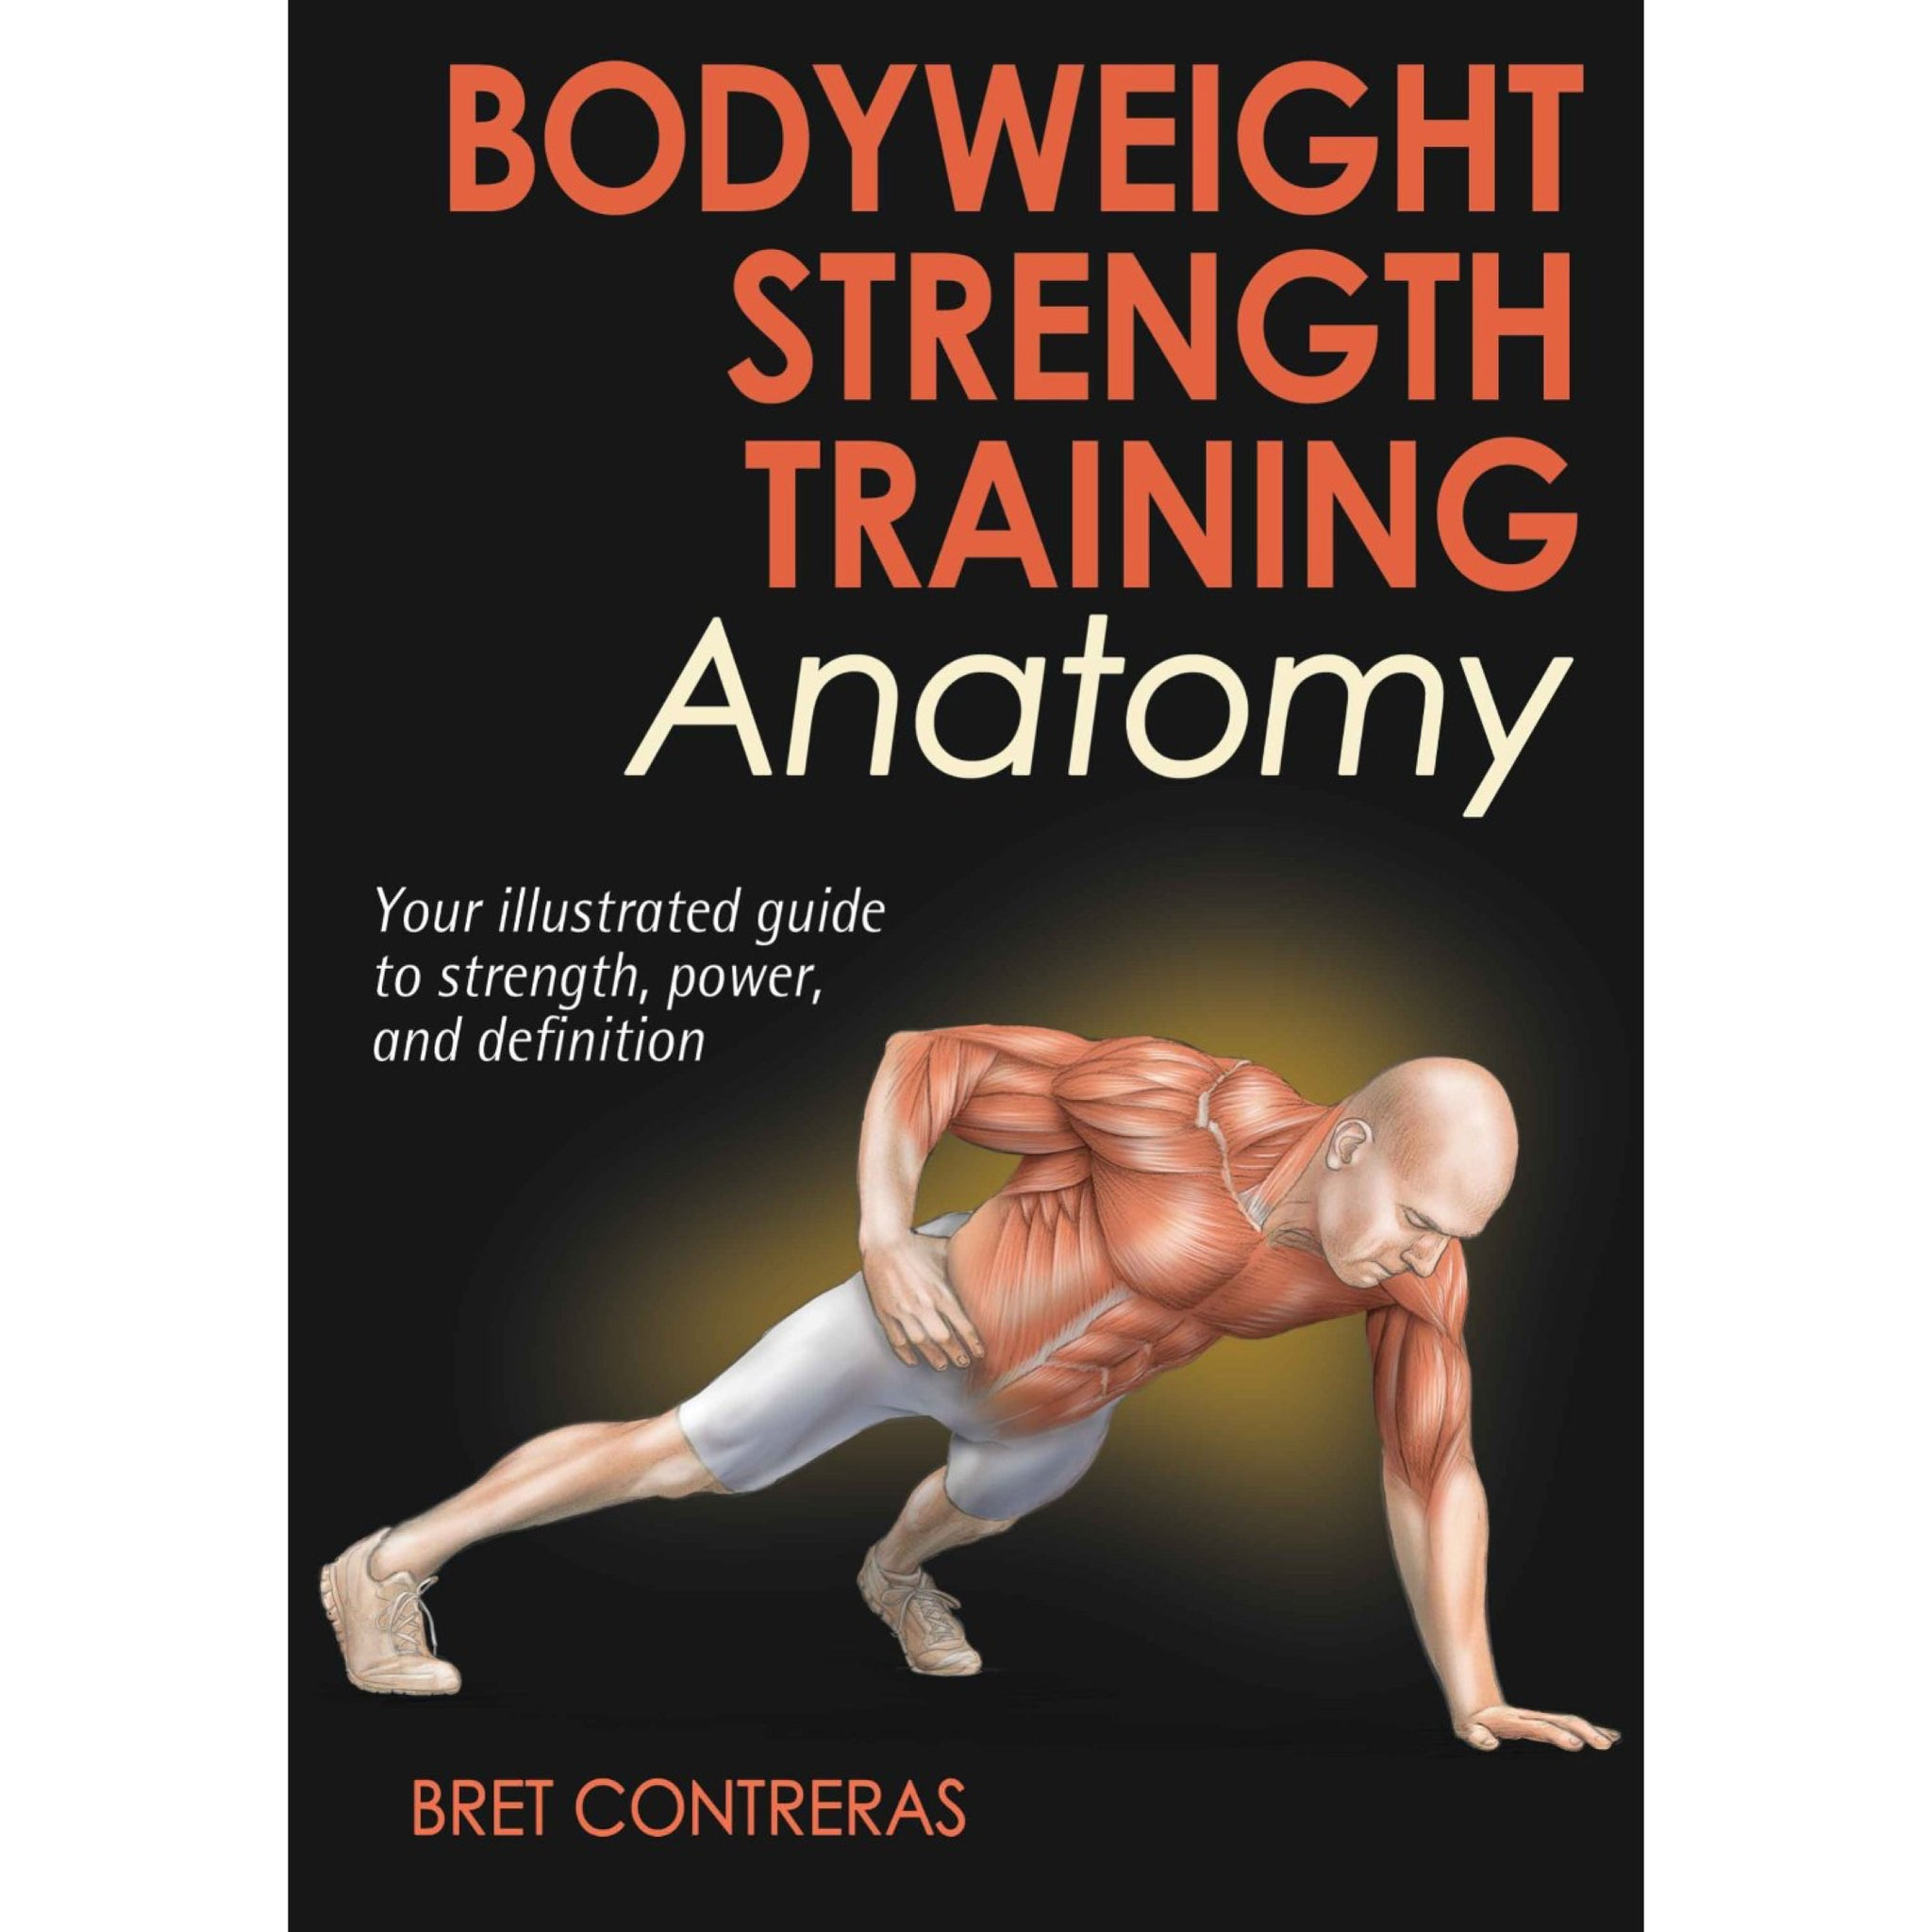 Bodyweight Strength Training Anatomy - Bret Contreras